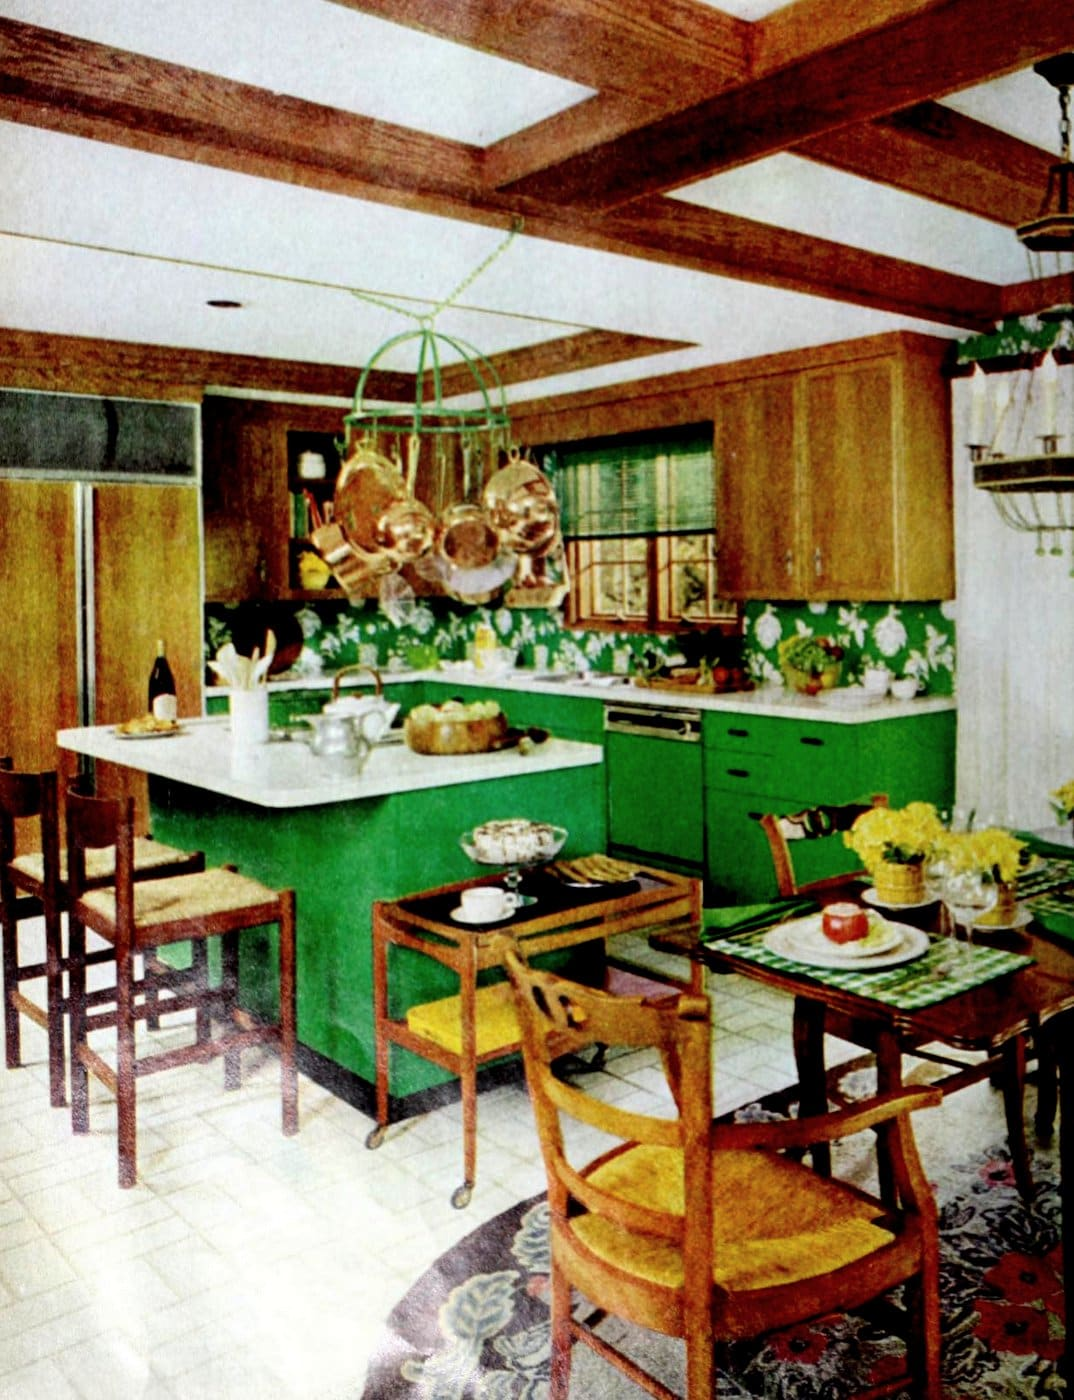 Green painted and stained wood cabinetry in vintage kitchen with an island (1977)